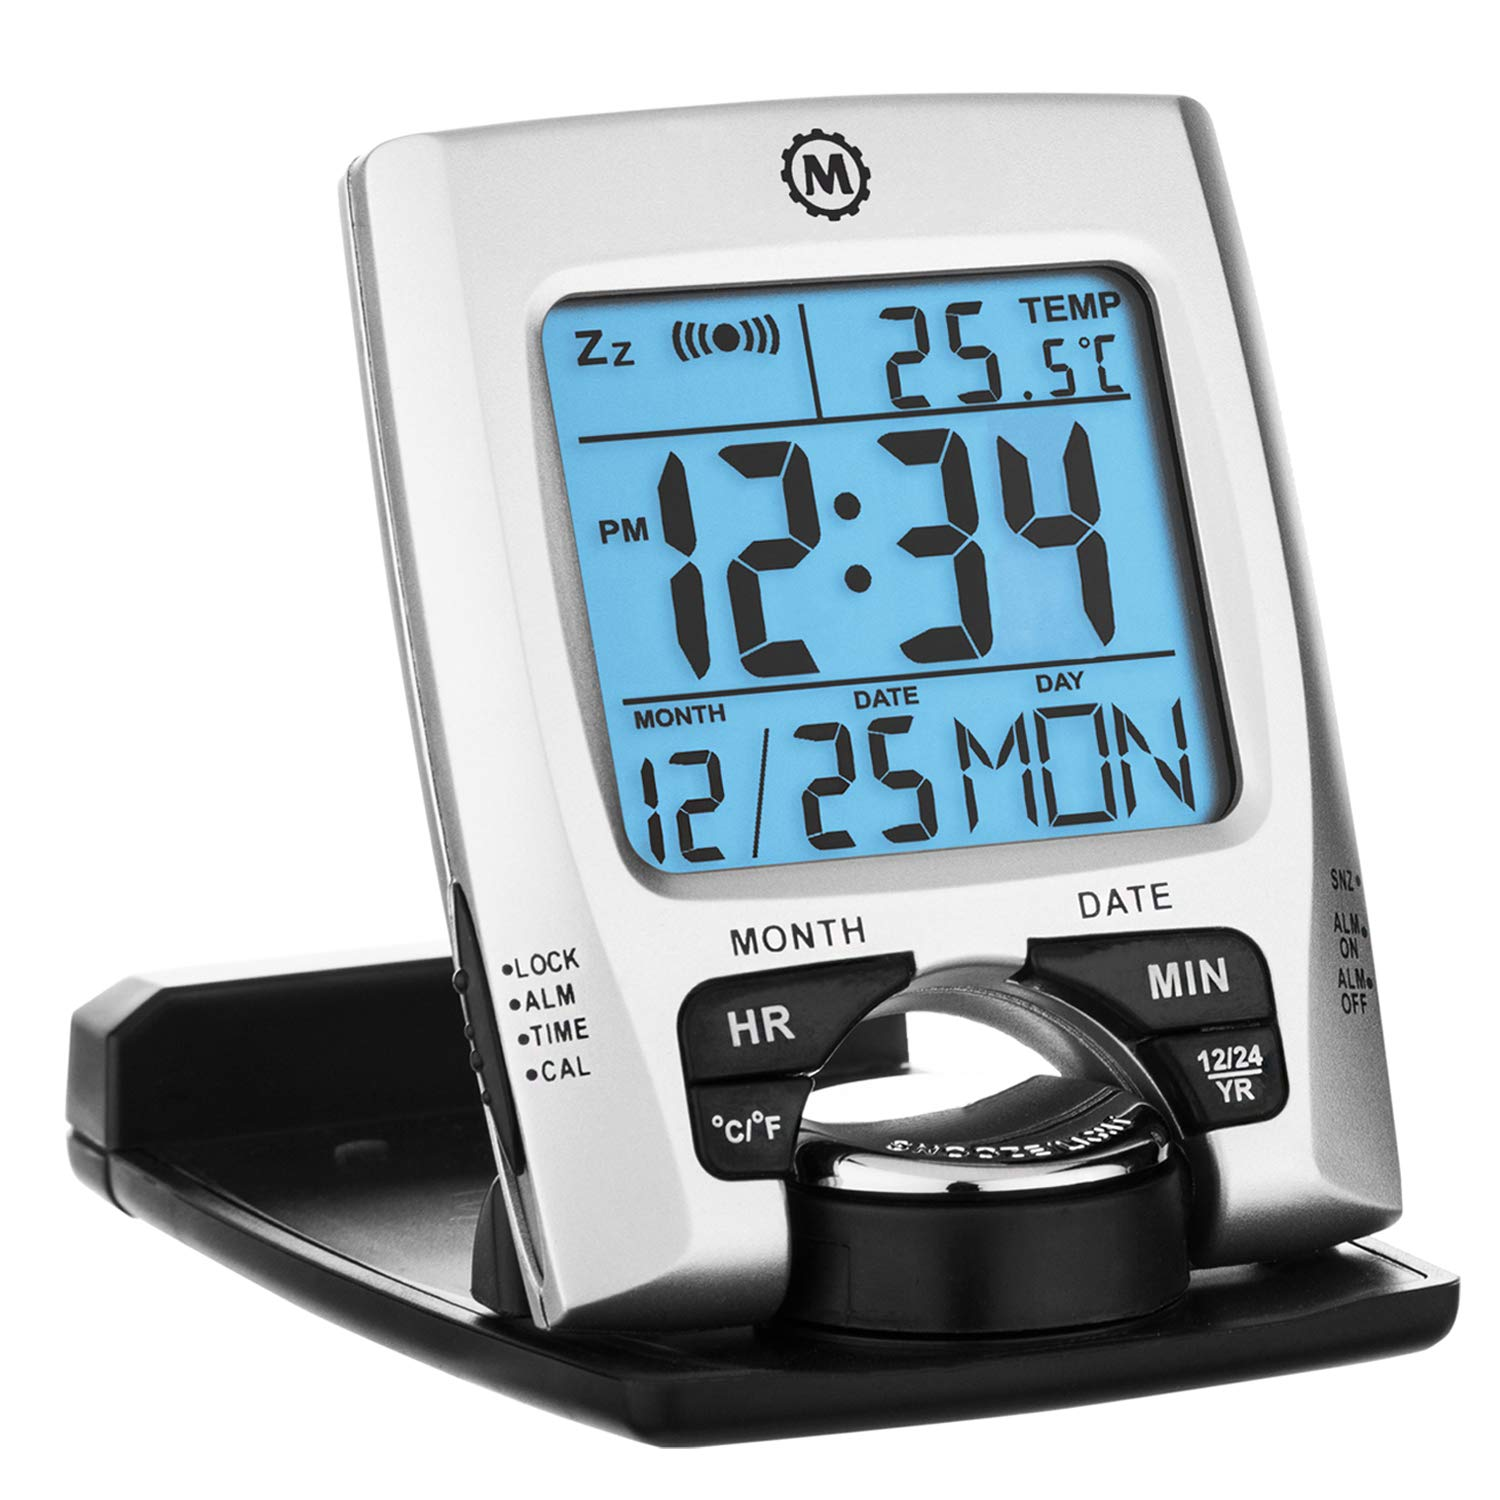 Marathon CL030023 Travel Alarm Clock with Calendar & Temperature - Battery Included by Marathon